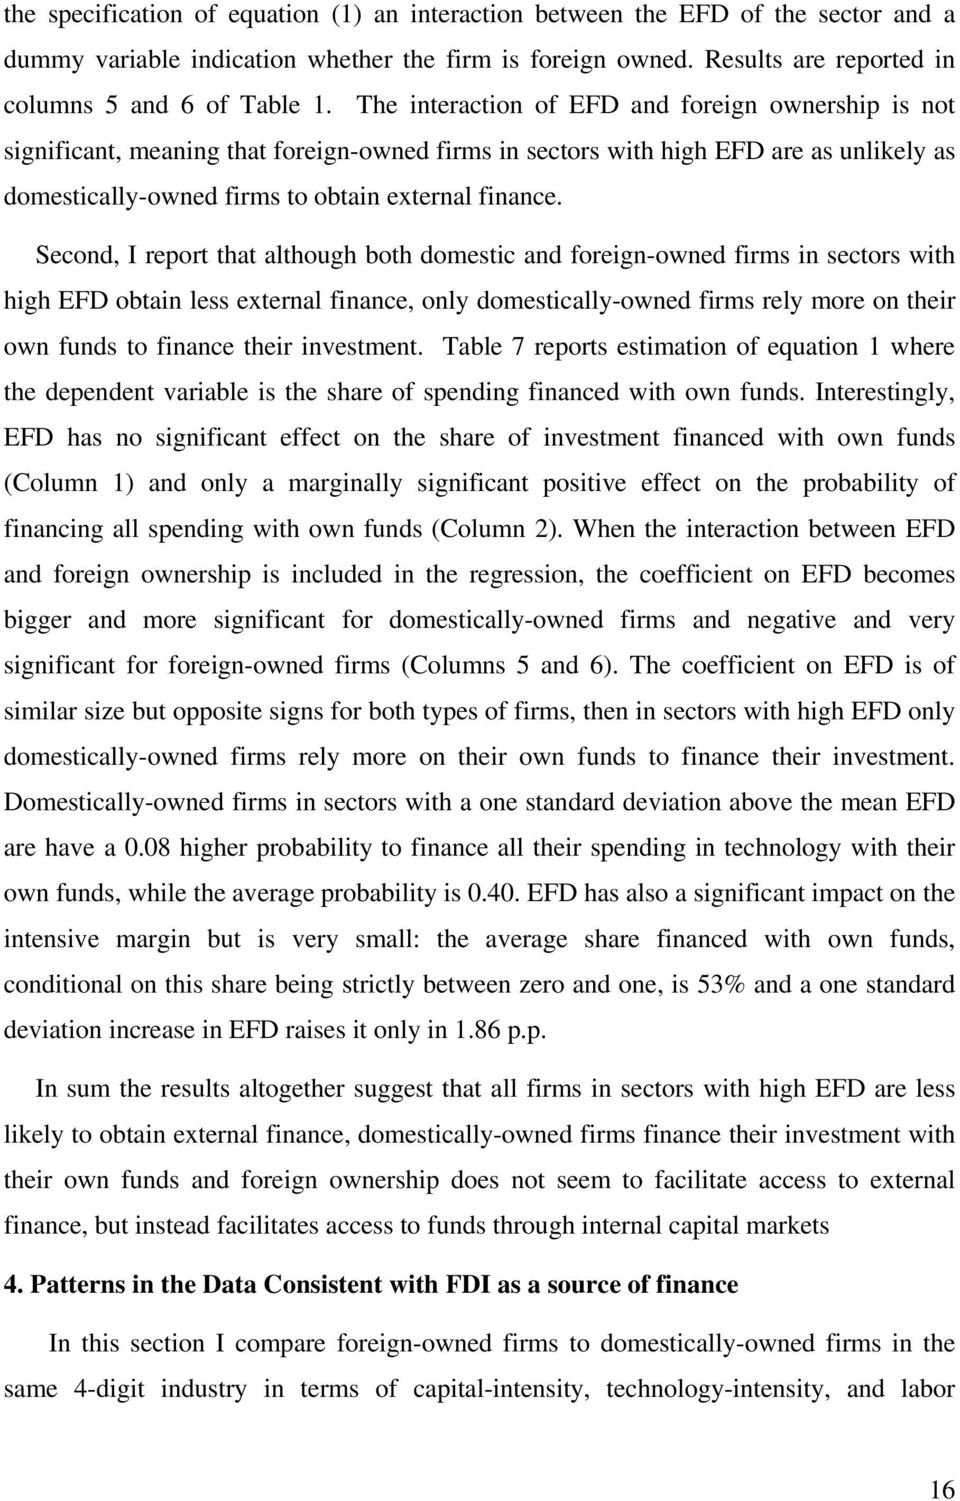 Second, I report that although both domestic and foreign-owned firms in sectors with high EFD obtain less external finance, only domestically-owned firms rely more on their own funds to finance their